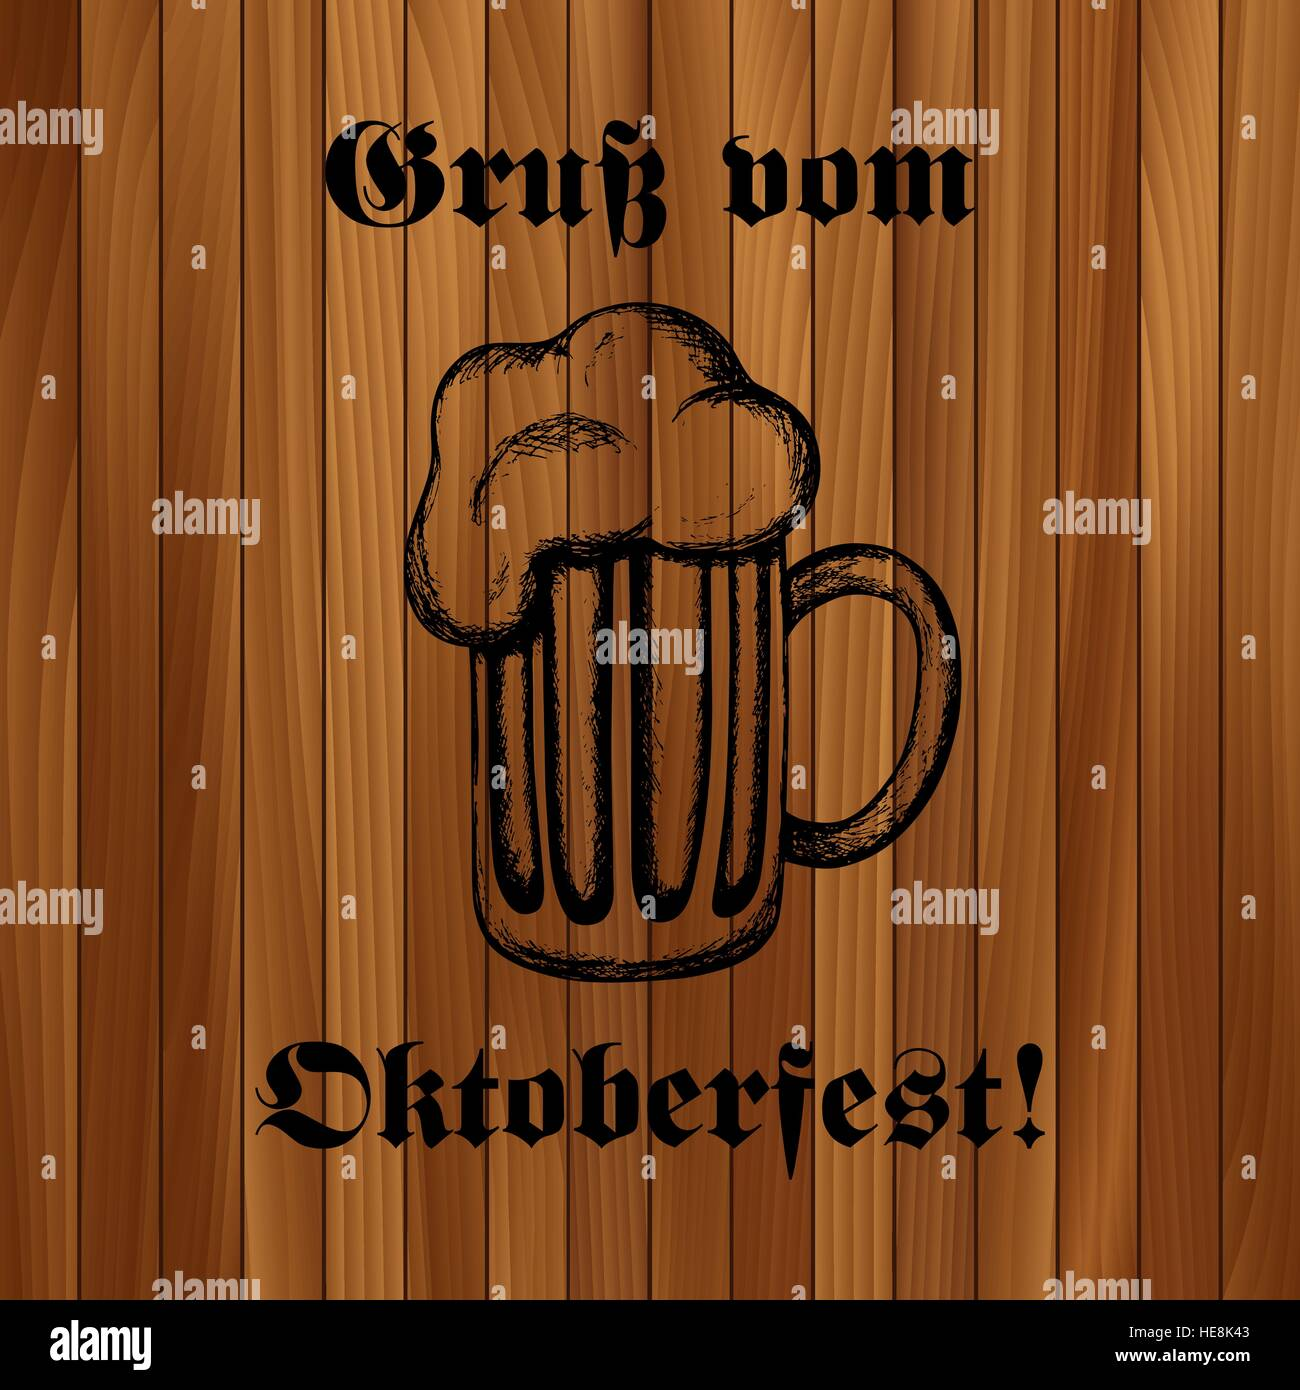 Hand drawn vector illustration of a mug of beer oktoberfest stock hand drawn vector illustration of a mug of beer oktoberfest celebration design text in german greetings from oktoberfest m4hsunfo